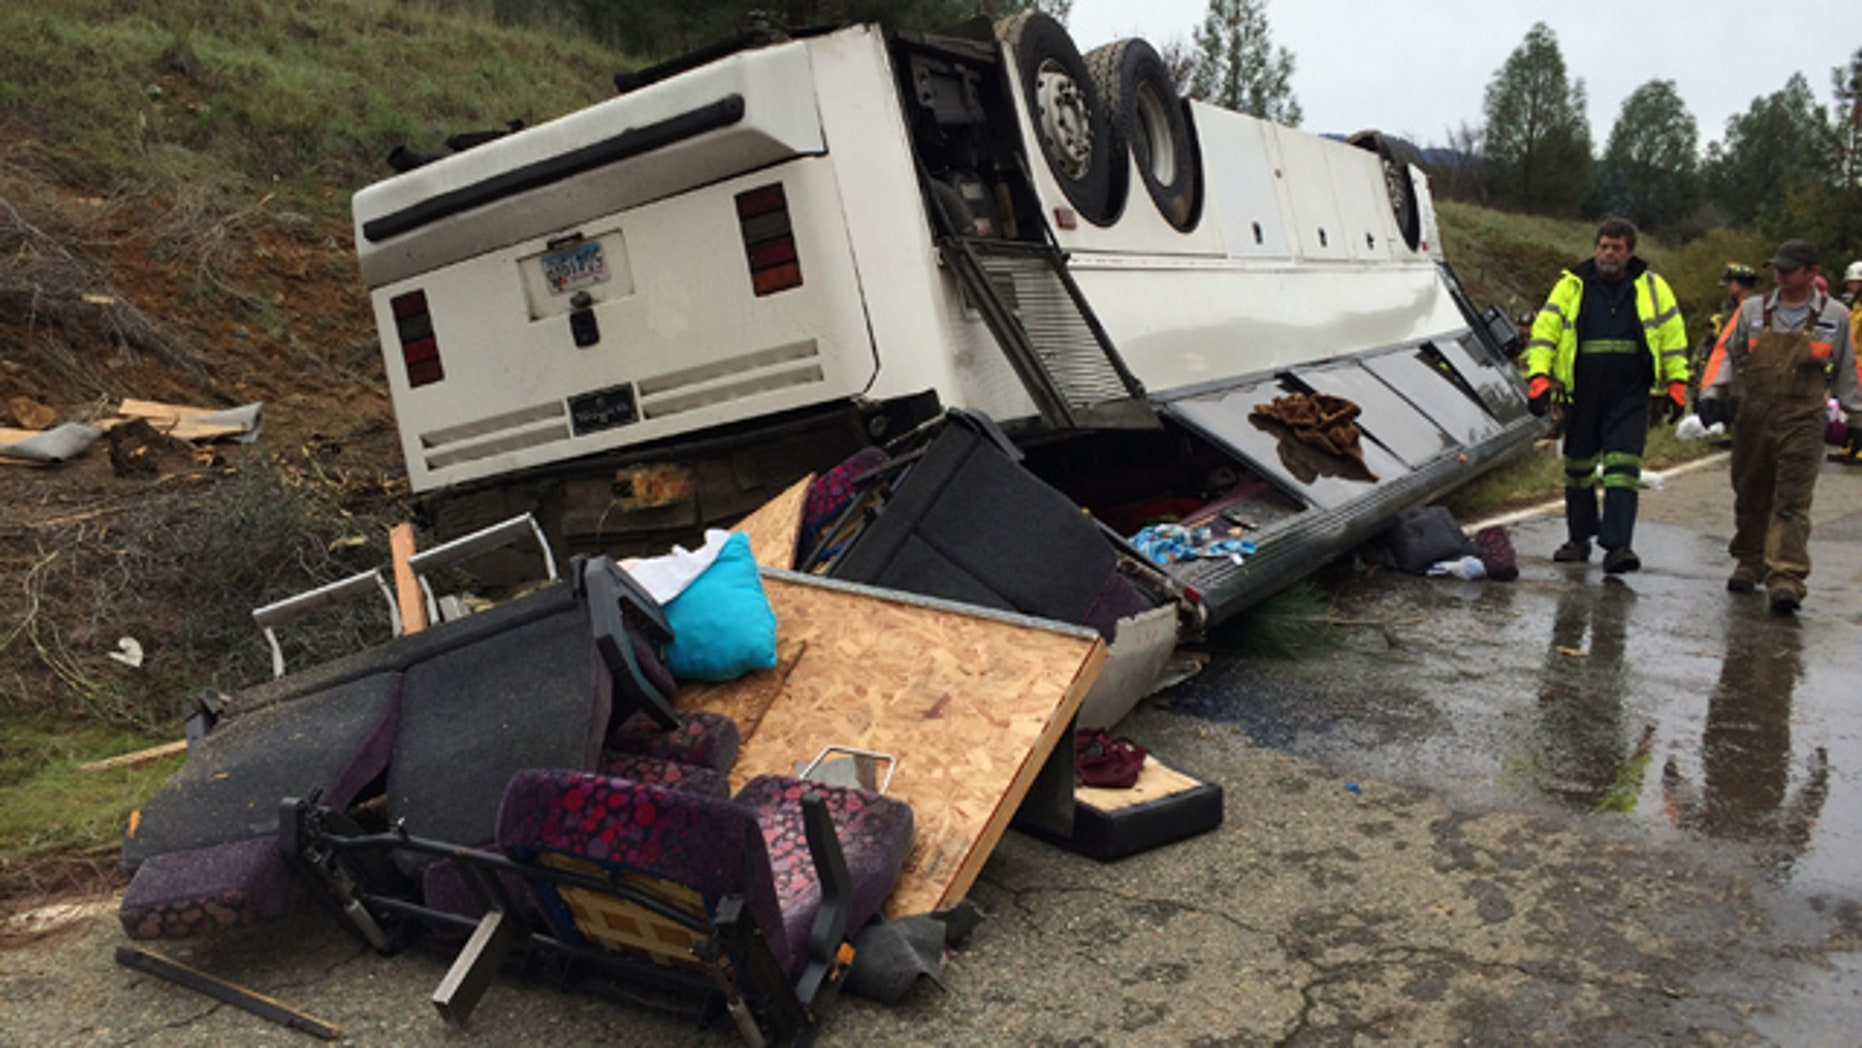 November 23, 2014: Emergency personnel check a tour bus that had already crashed earlier in the day and overturned just off Interstate 5 in Northern California, killing one person and sending dozens to hospitals near the Pollard Flat area in Redding, Calif. (AP Photo/The Record Searchlight, Alayna Shulman)